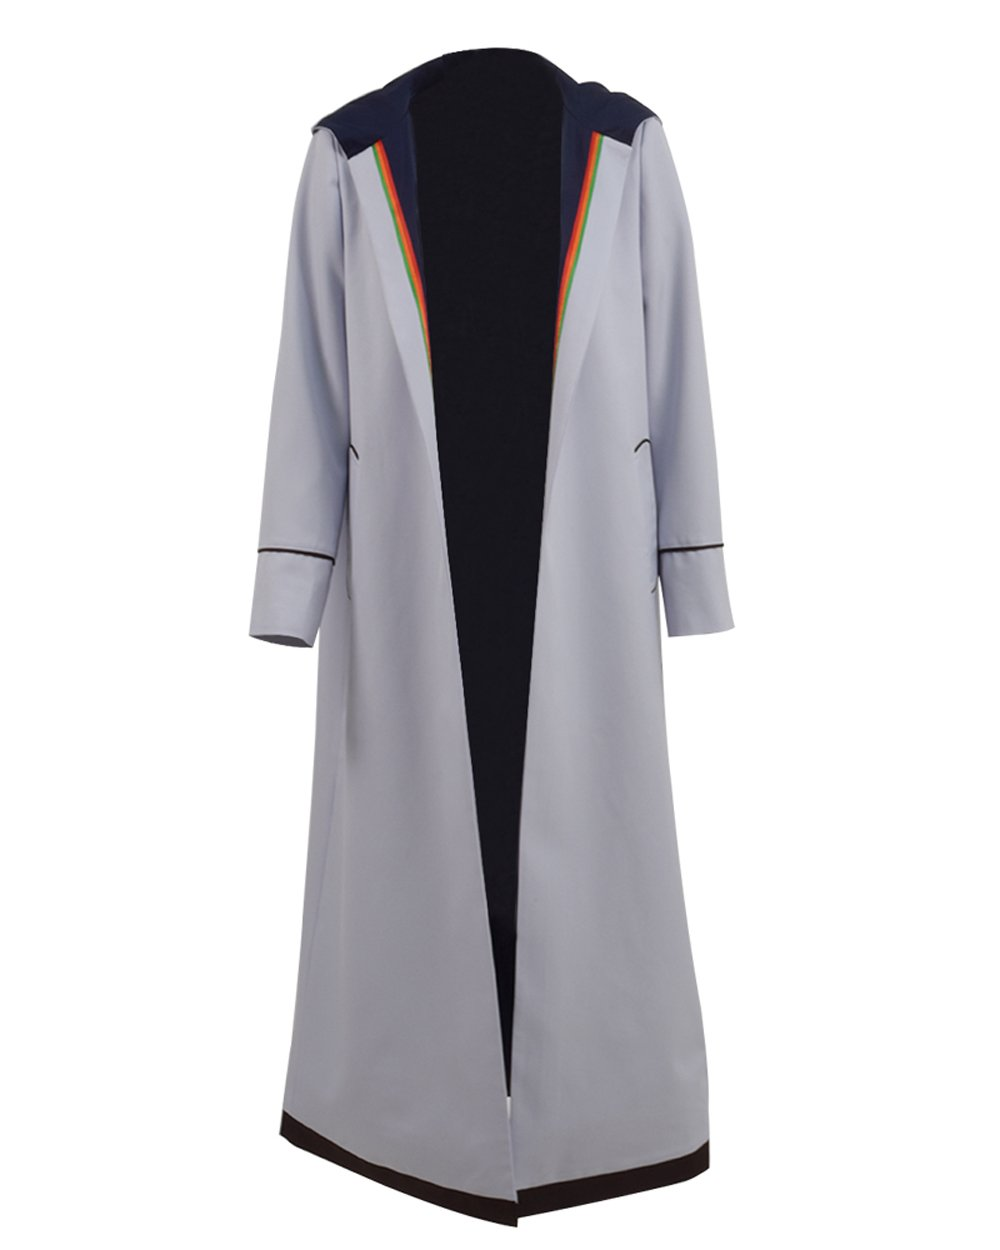 TISEA Womens 13th Doctor Long Trench Who Is Doctor Cosplay Costume (XXL, Grey Coat) by TISEA